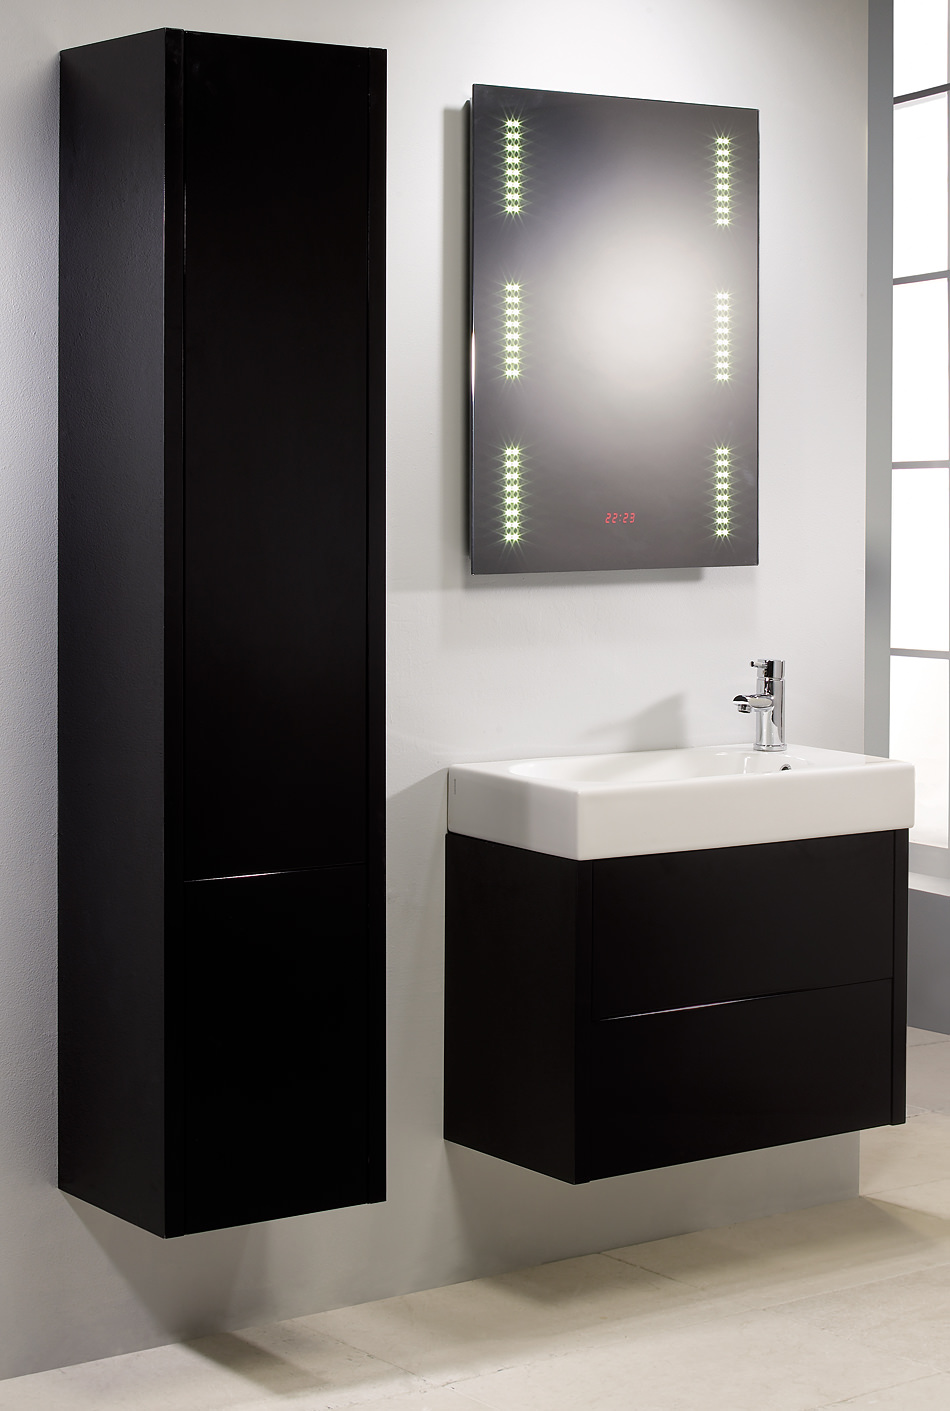 Outstanding Wall Mounted Bathroom Storage 950 x 1411 · 528 kB · jpeg